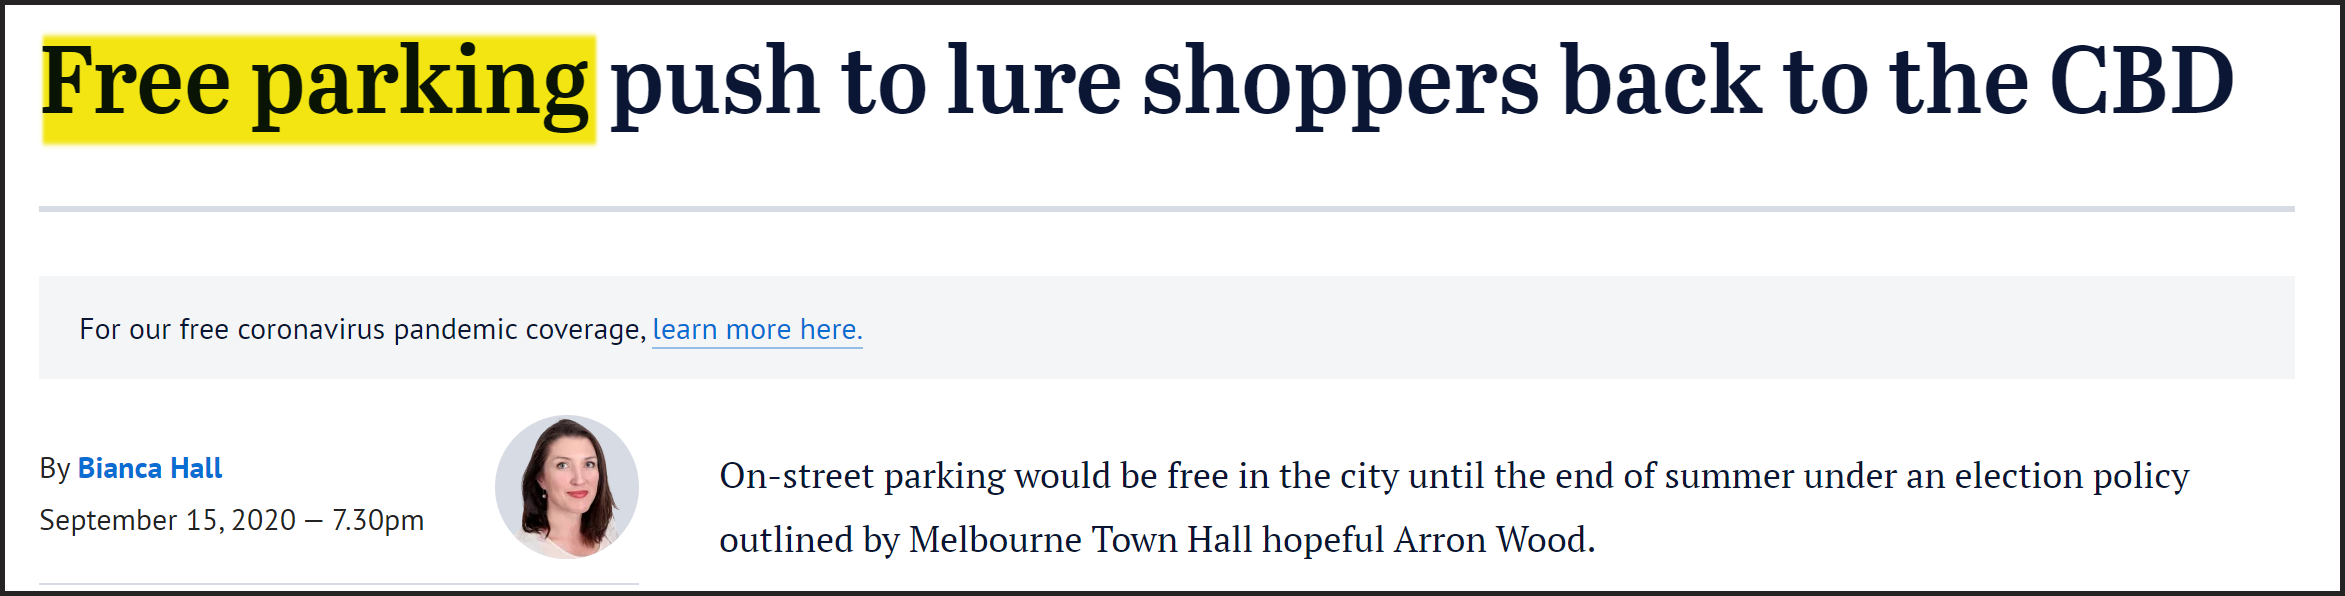 Free parking melbourne cbd